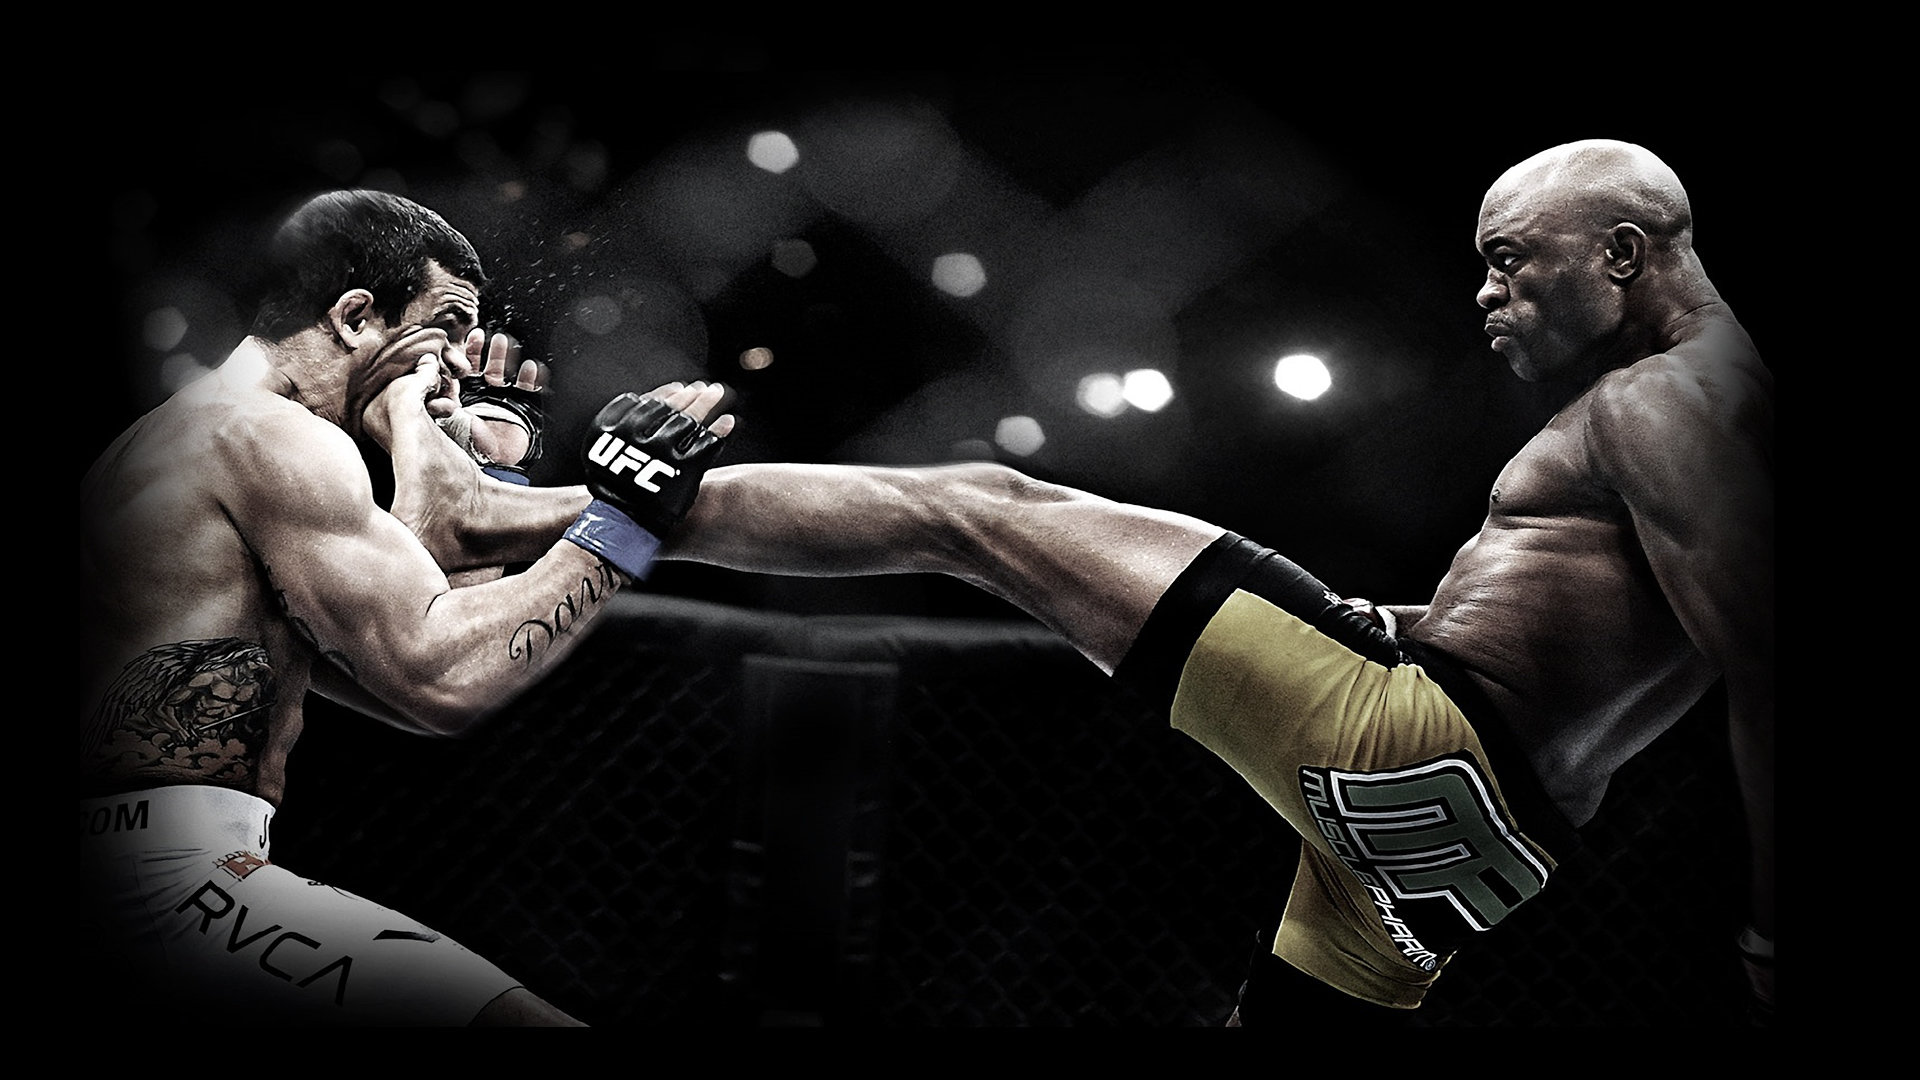 Awesome MMA (Mixed Martial Arts) free wallpaper ID:389469 for hd 1920x1080 desktop